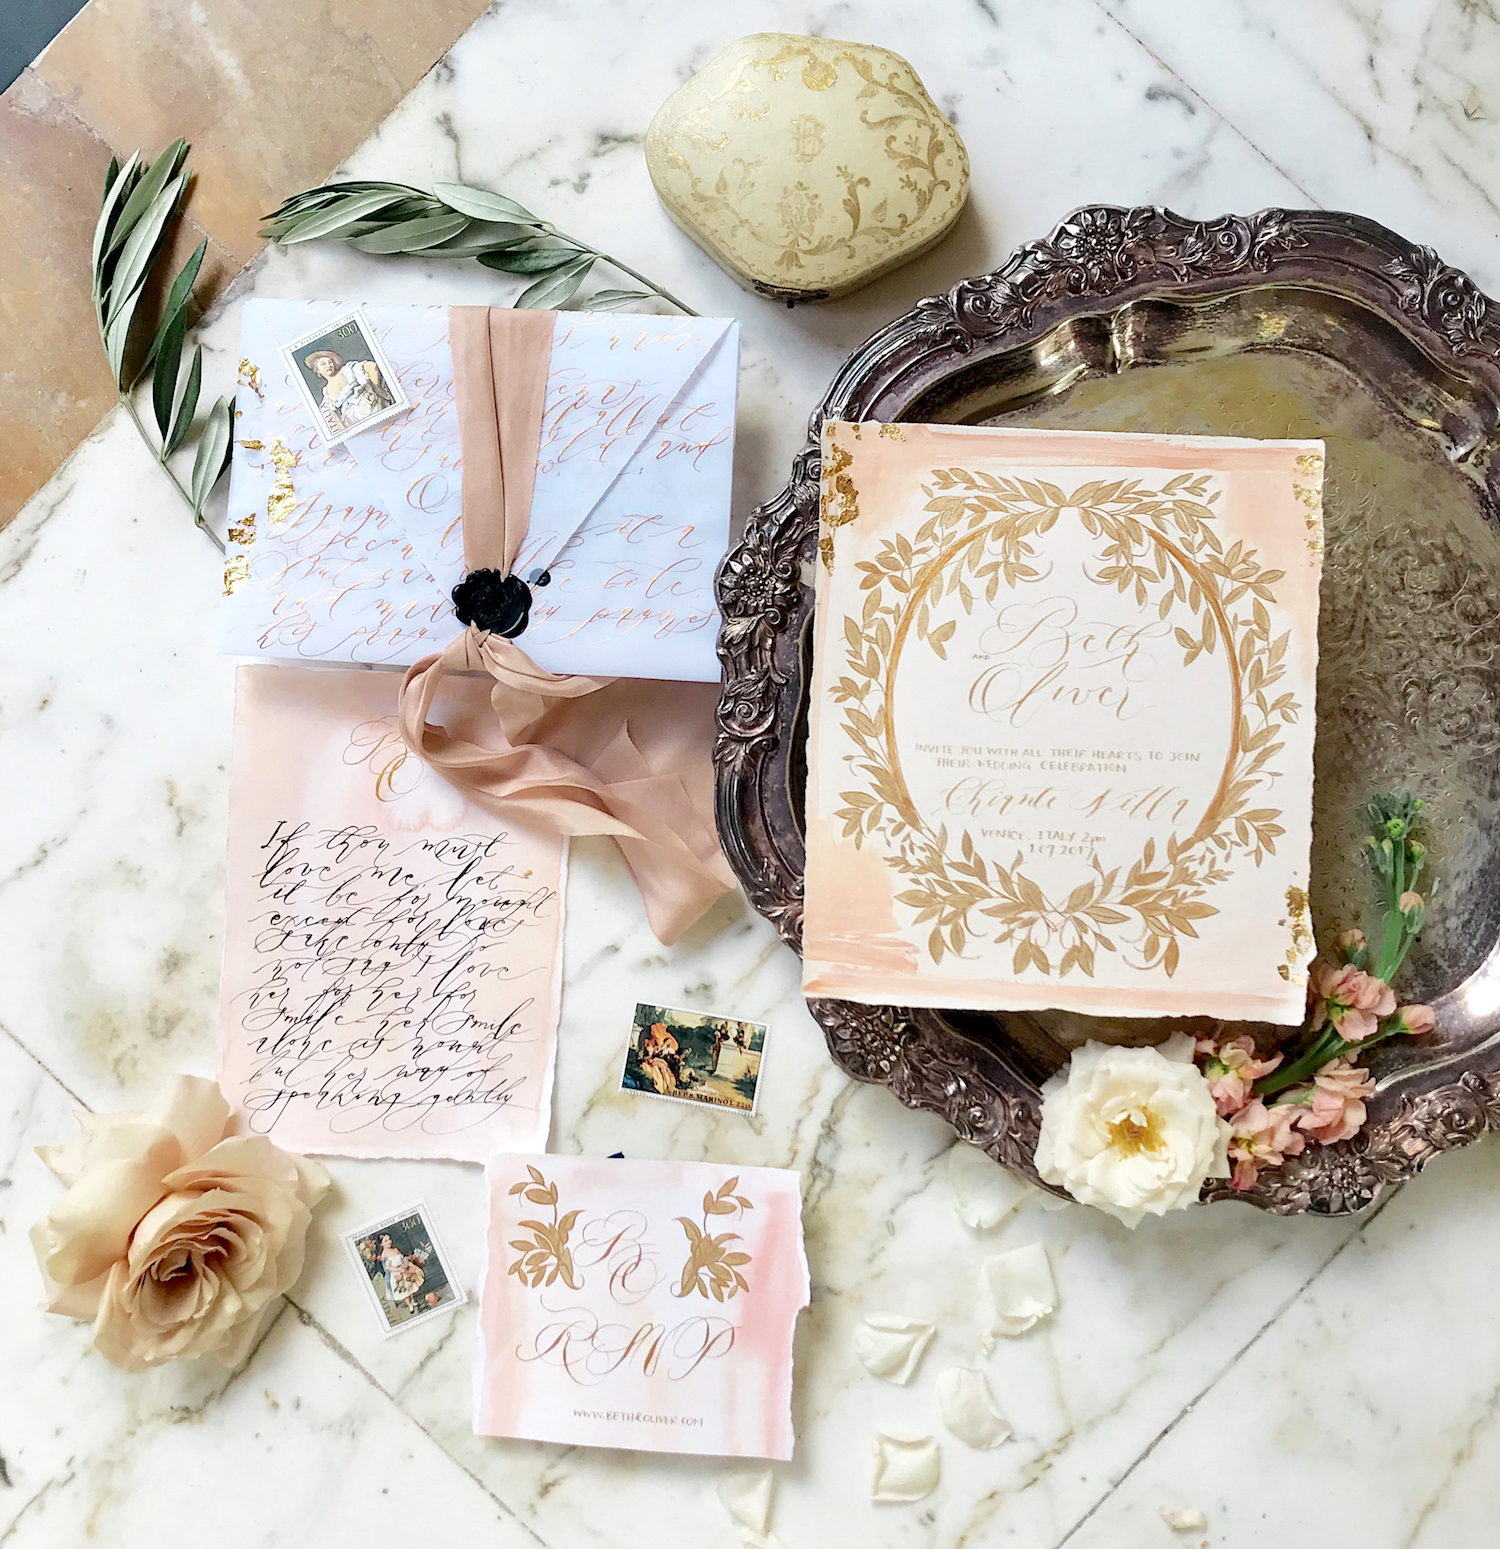 Handwritten Wedding Invitations Envelopes: Handwritten Calligraphy Wedding Invitations Suite With